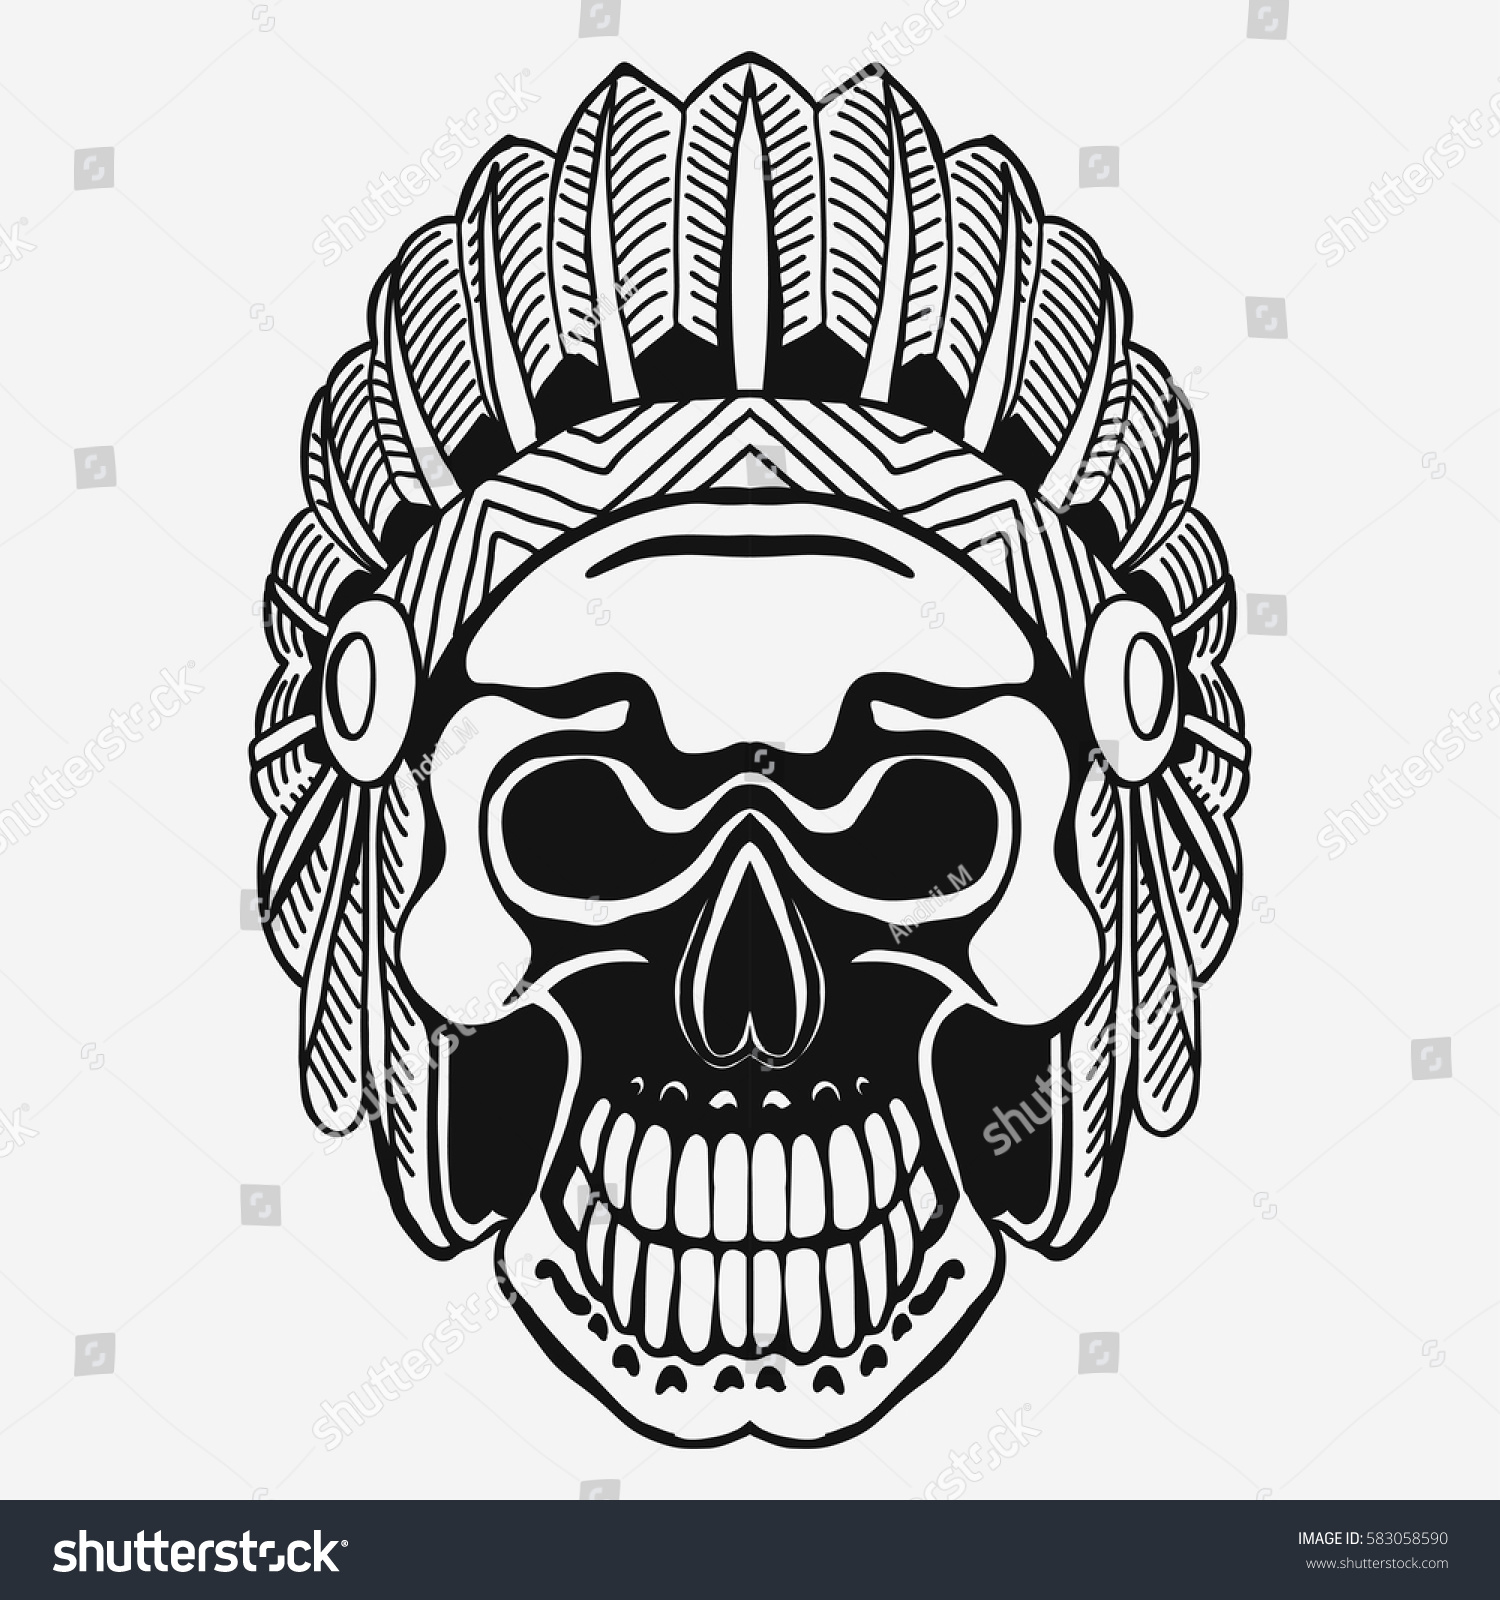 Indian skull with tribal feather hat dead chief in war bonnet native